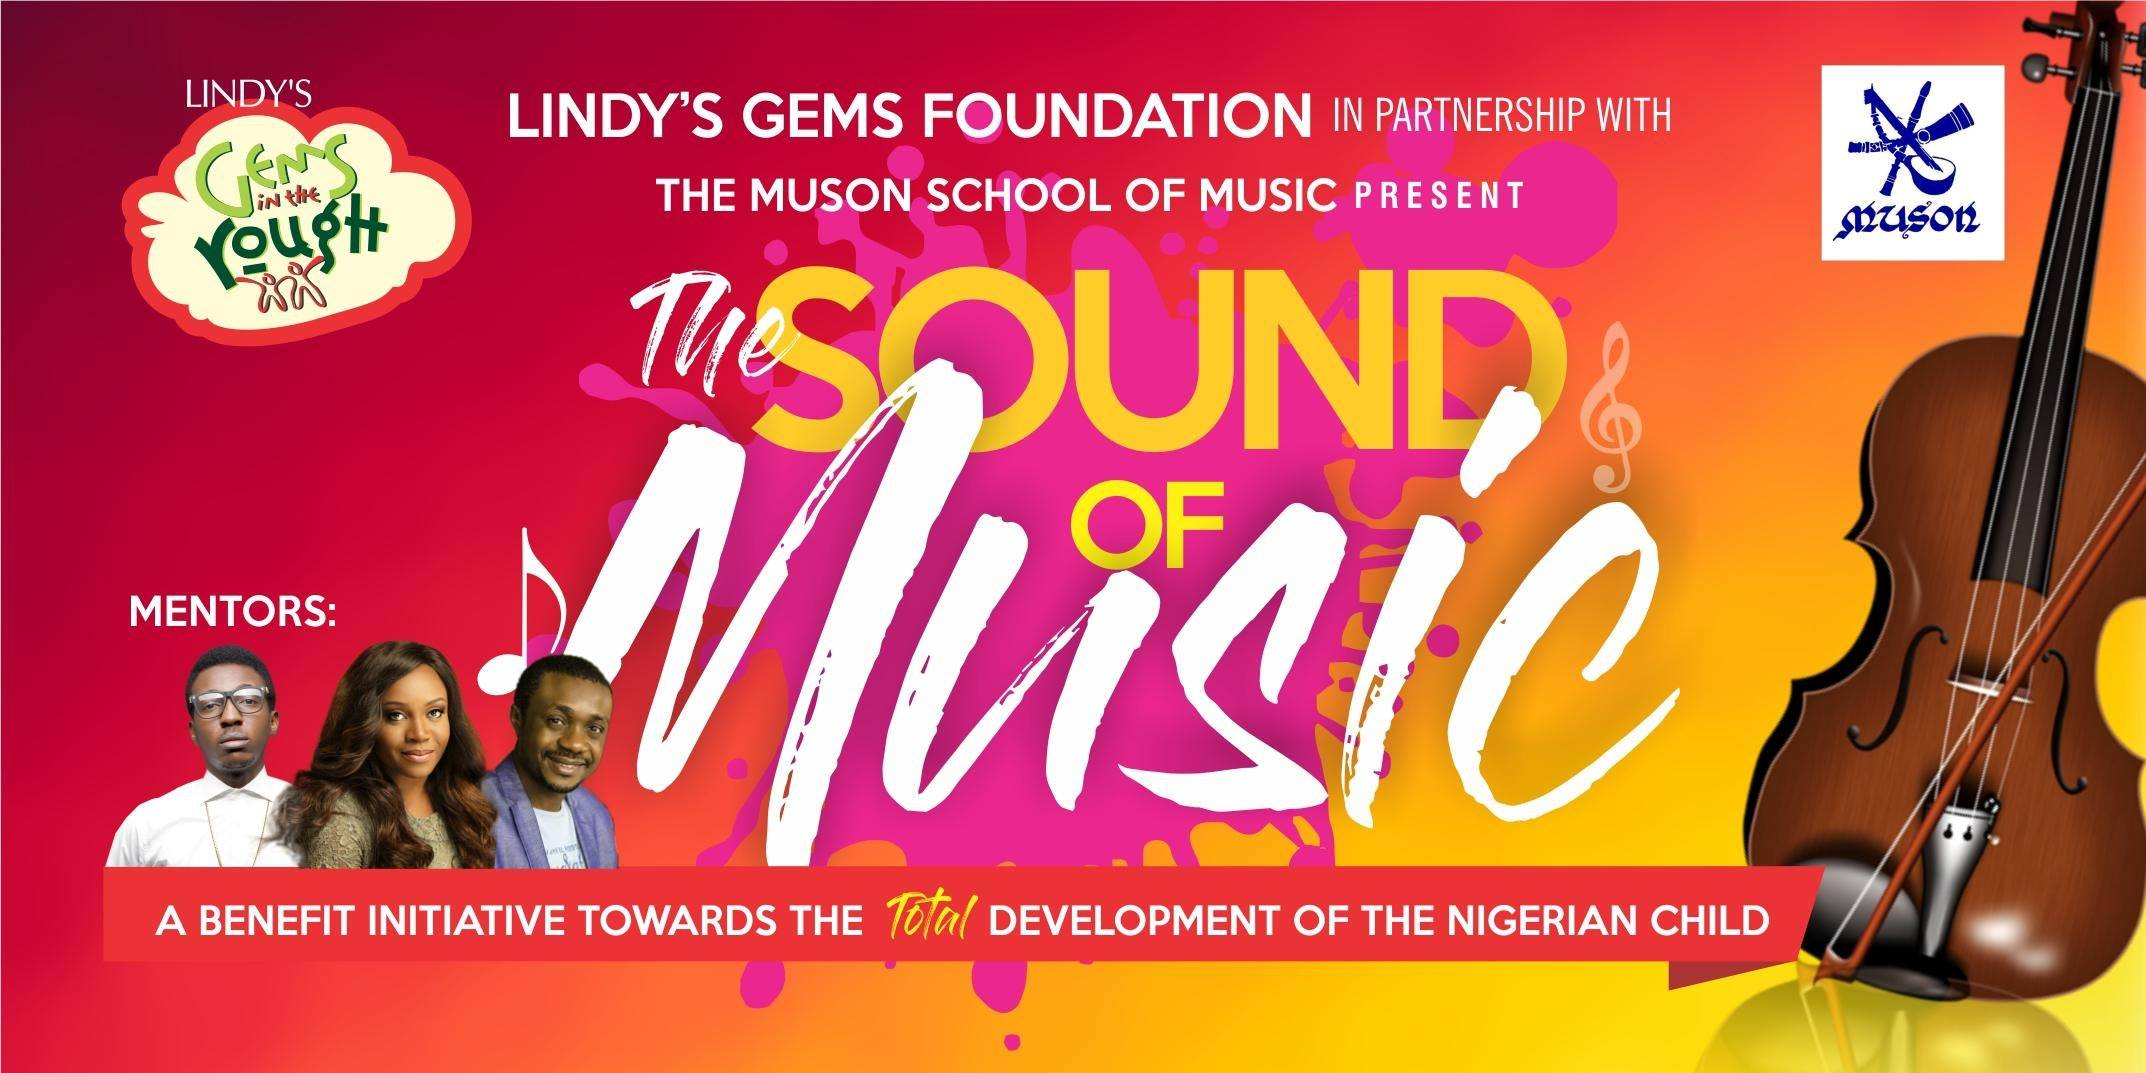 LINDY'S GEMS SOUND OF MUSIC CONCERT